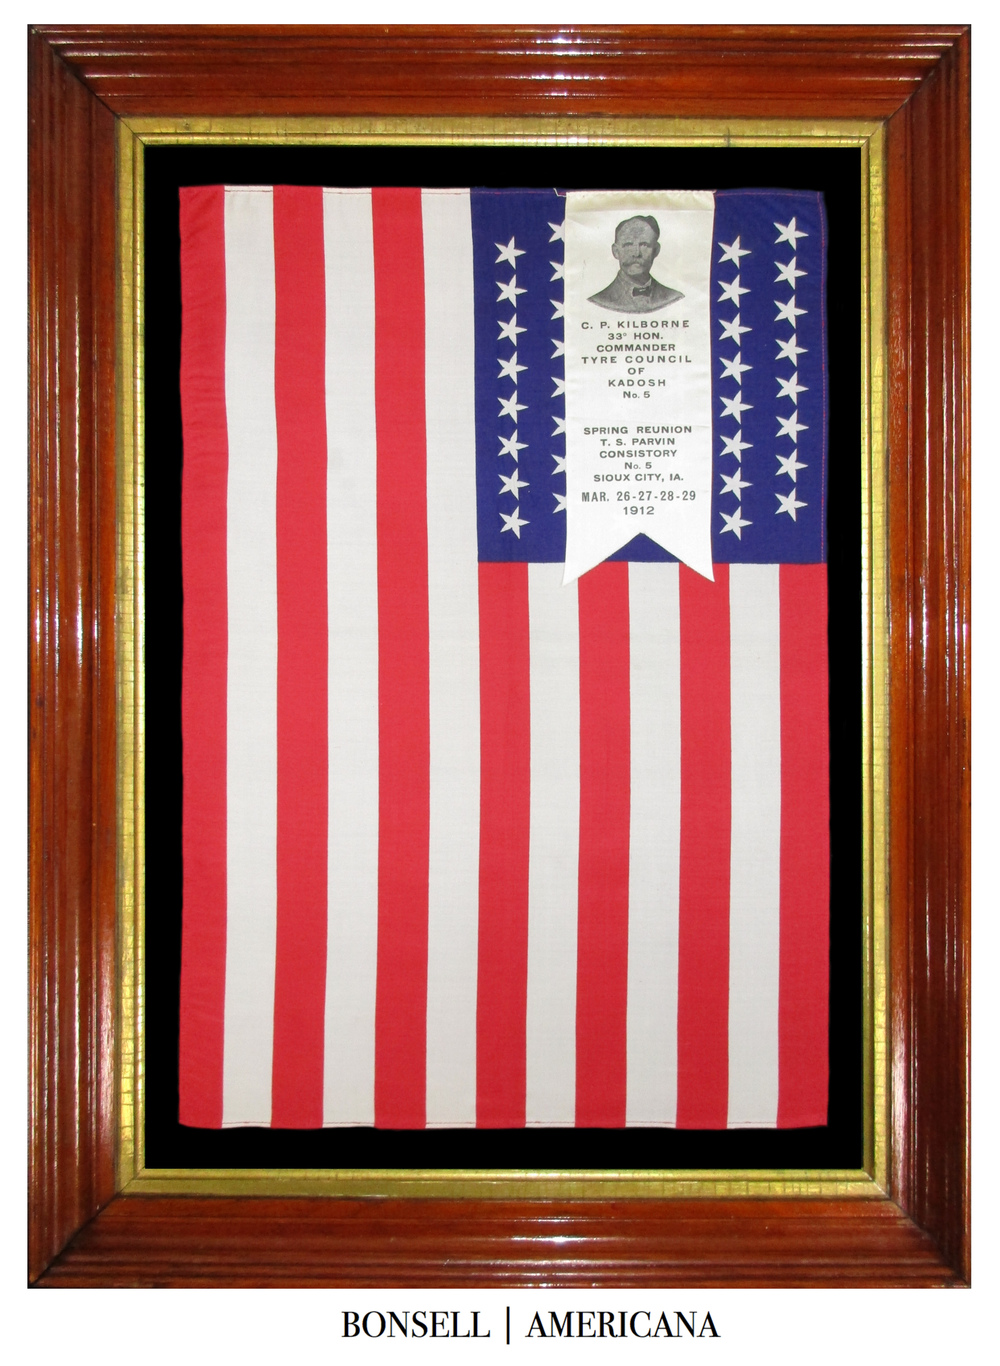 48 Star Antique Flag Used for Spring Reunion in 1912